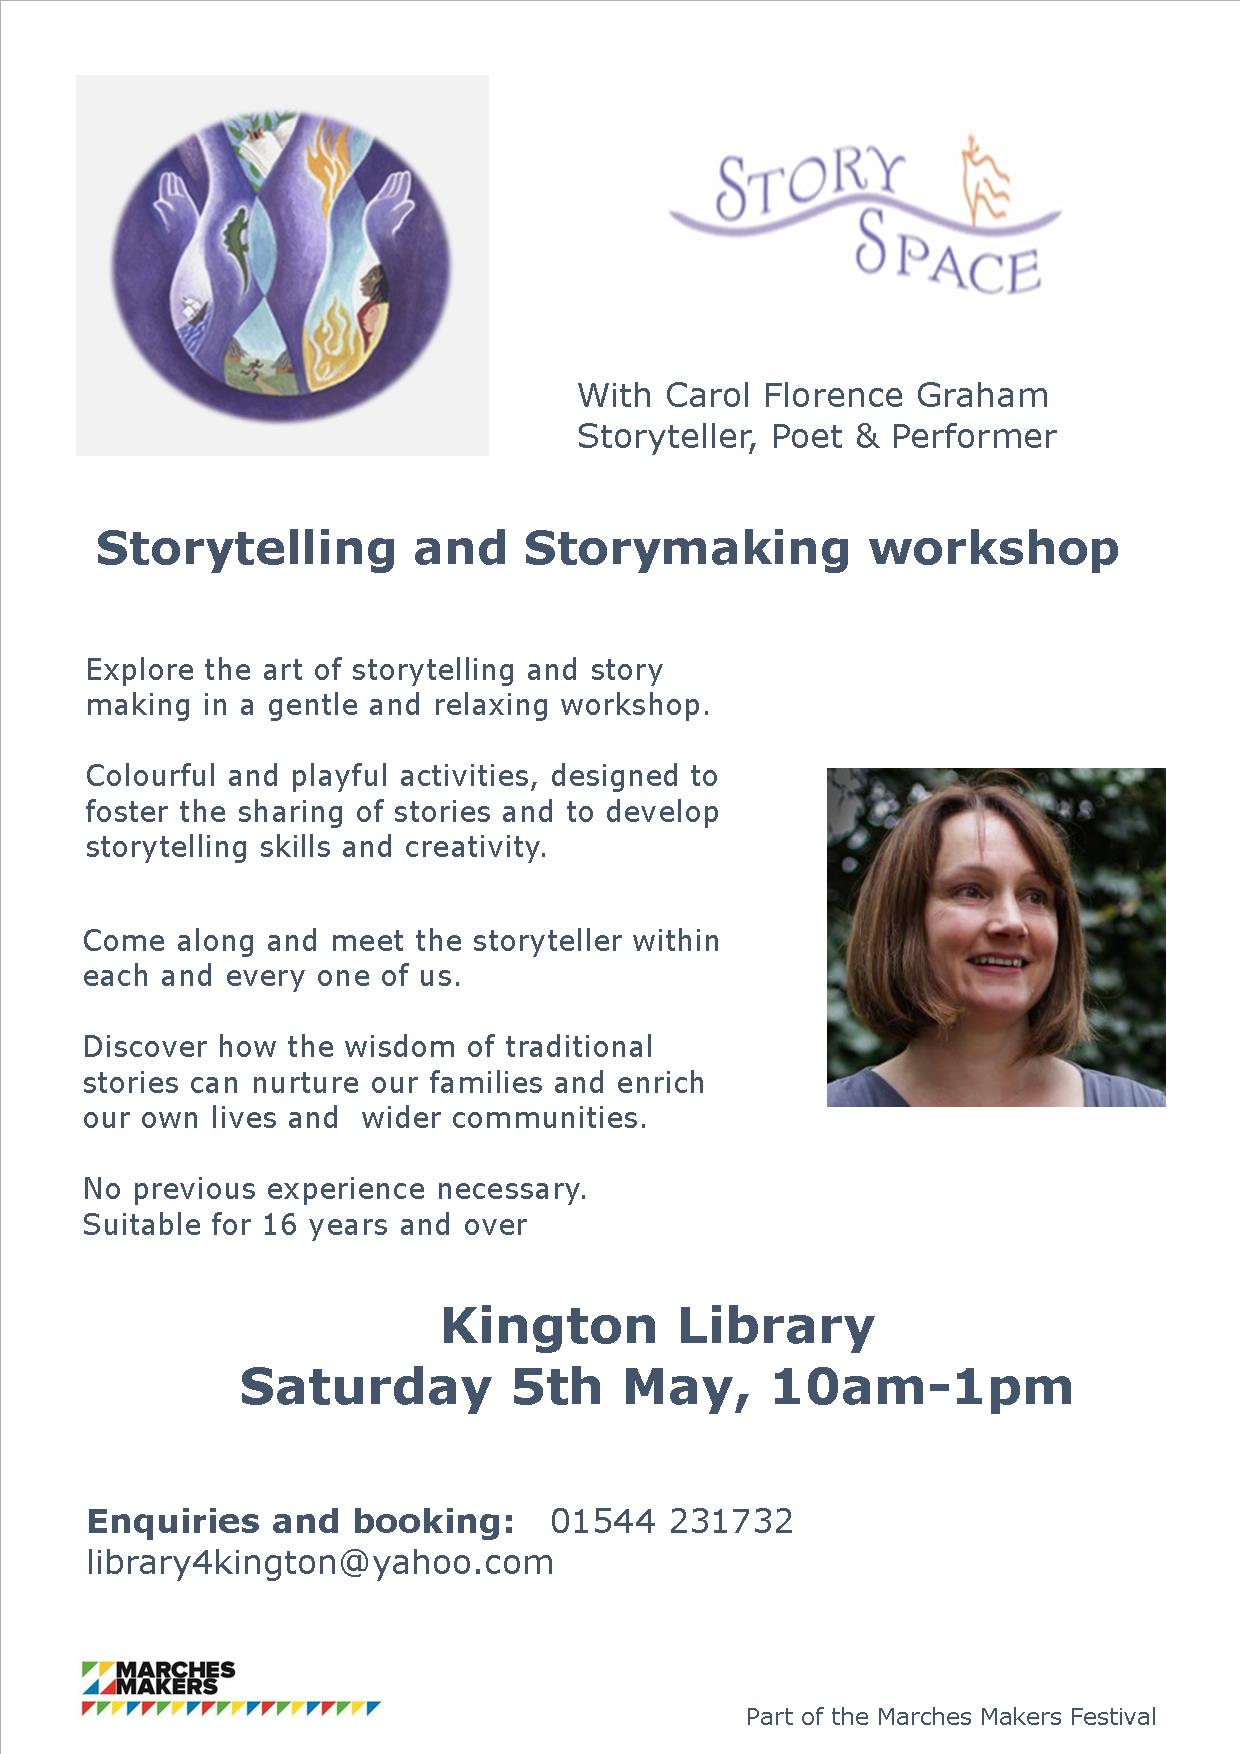 Storytelling and Storymaking workshop in Kington Library